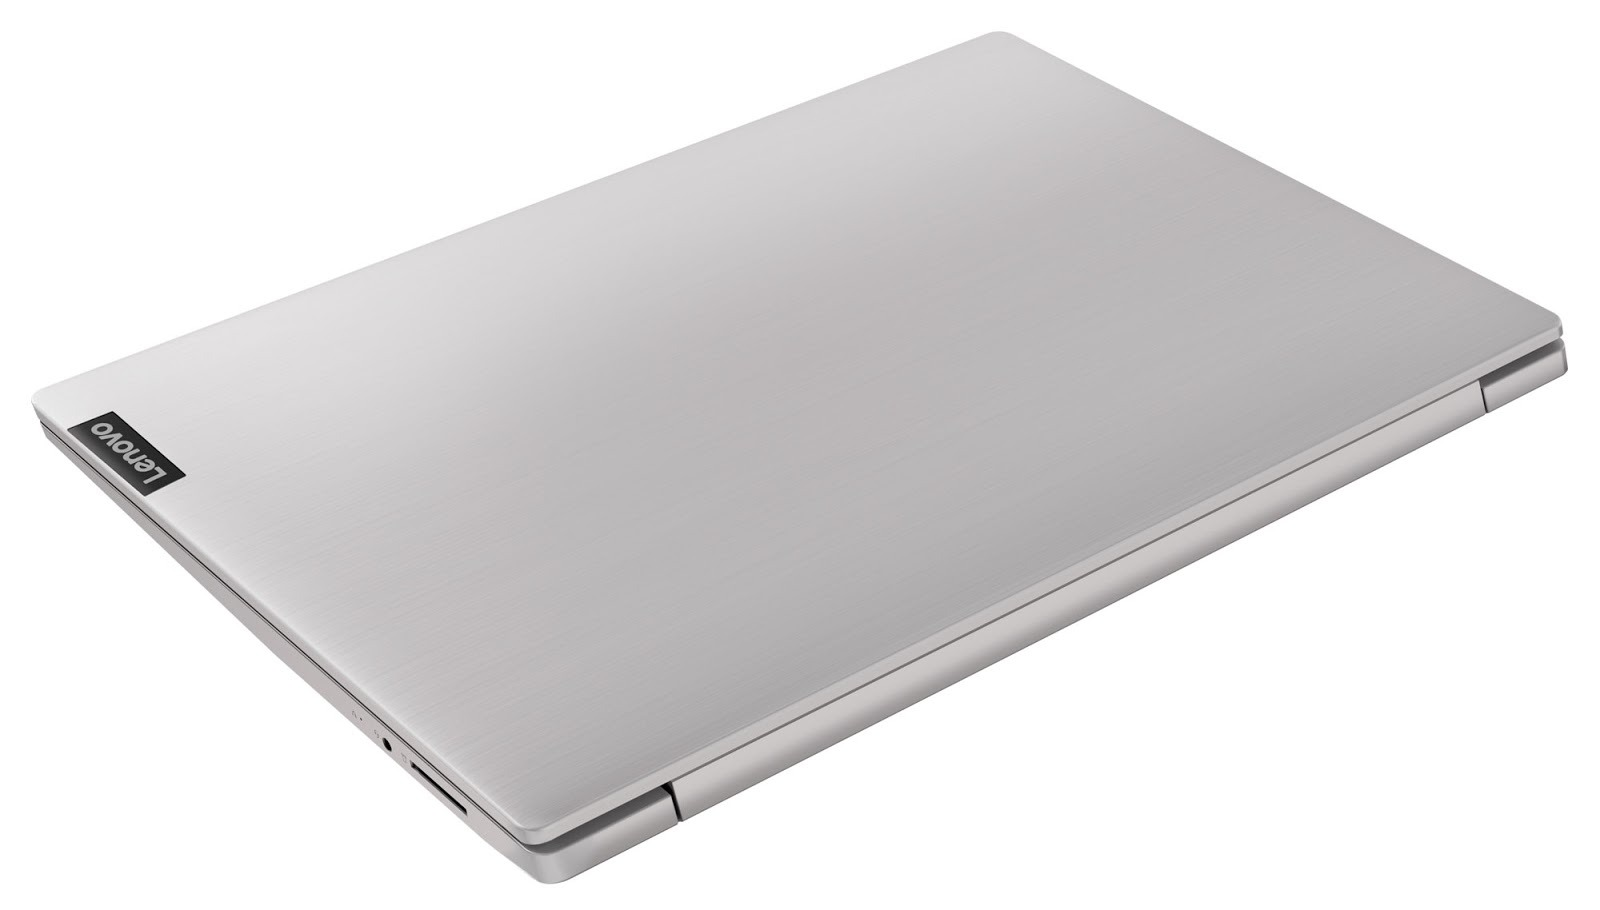 Фото 3. Ноутбук Lenovo ideapad S145-15IGM Grey (81MX003QRE)